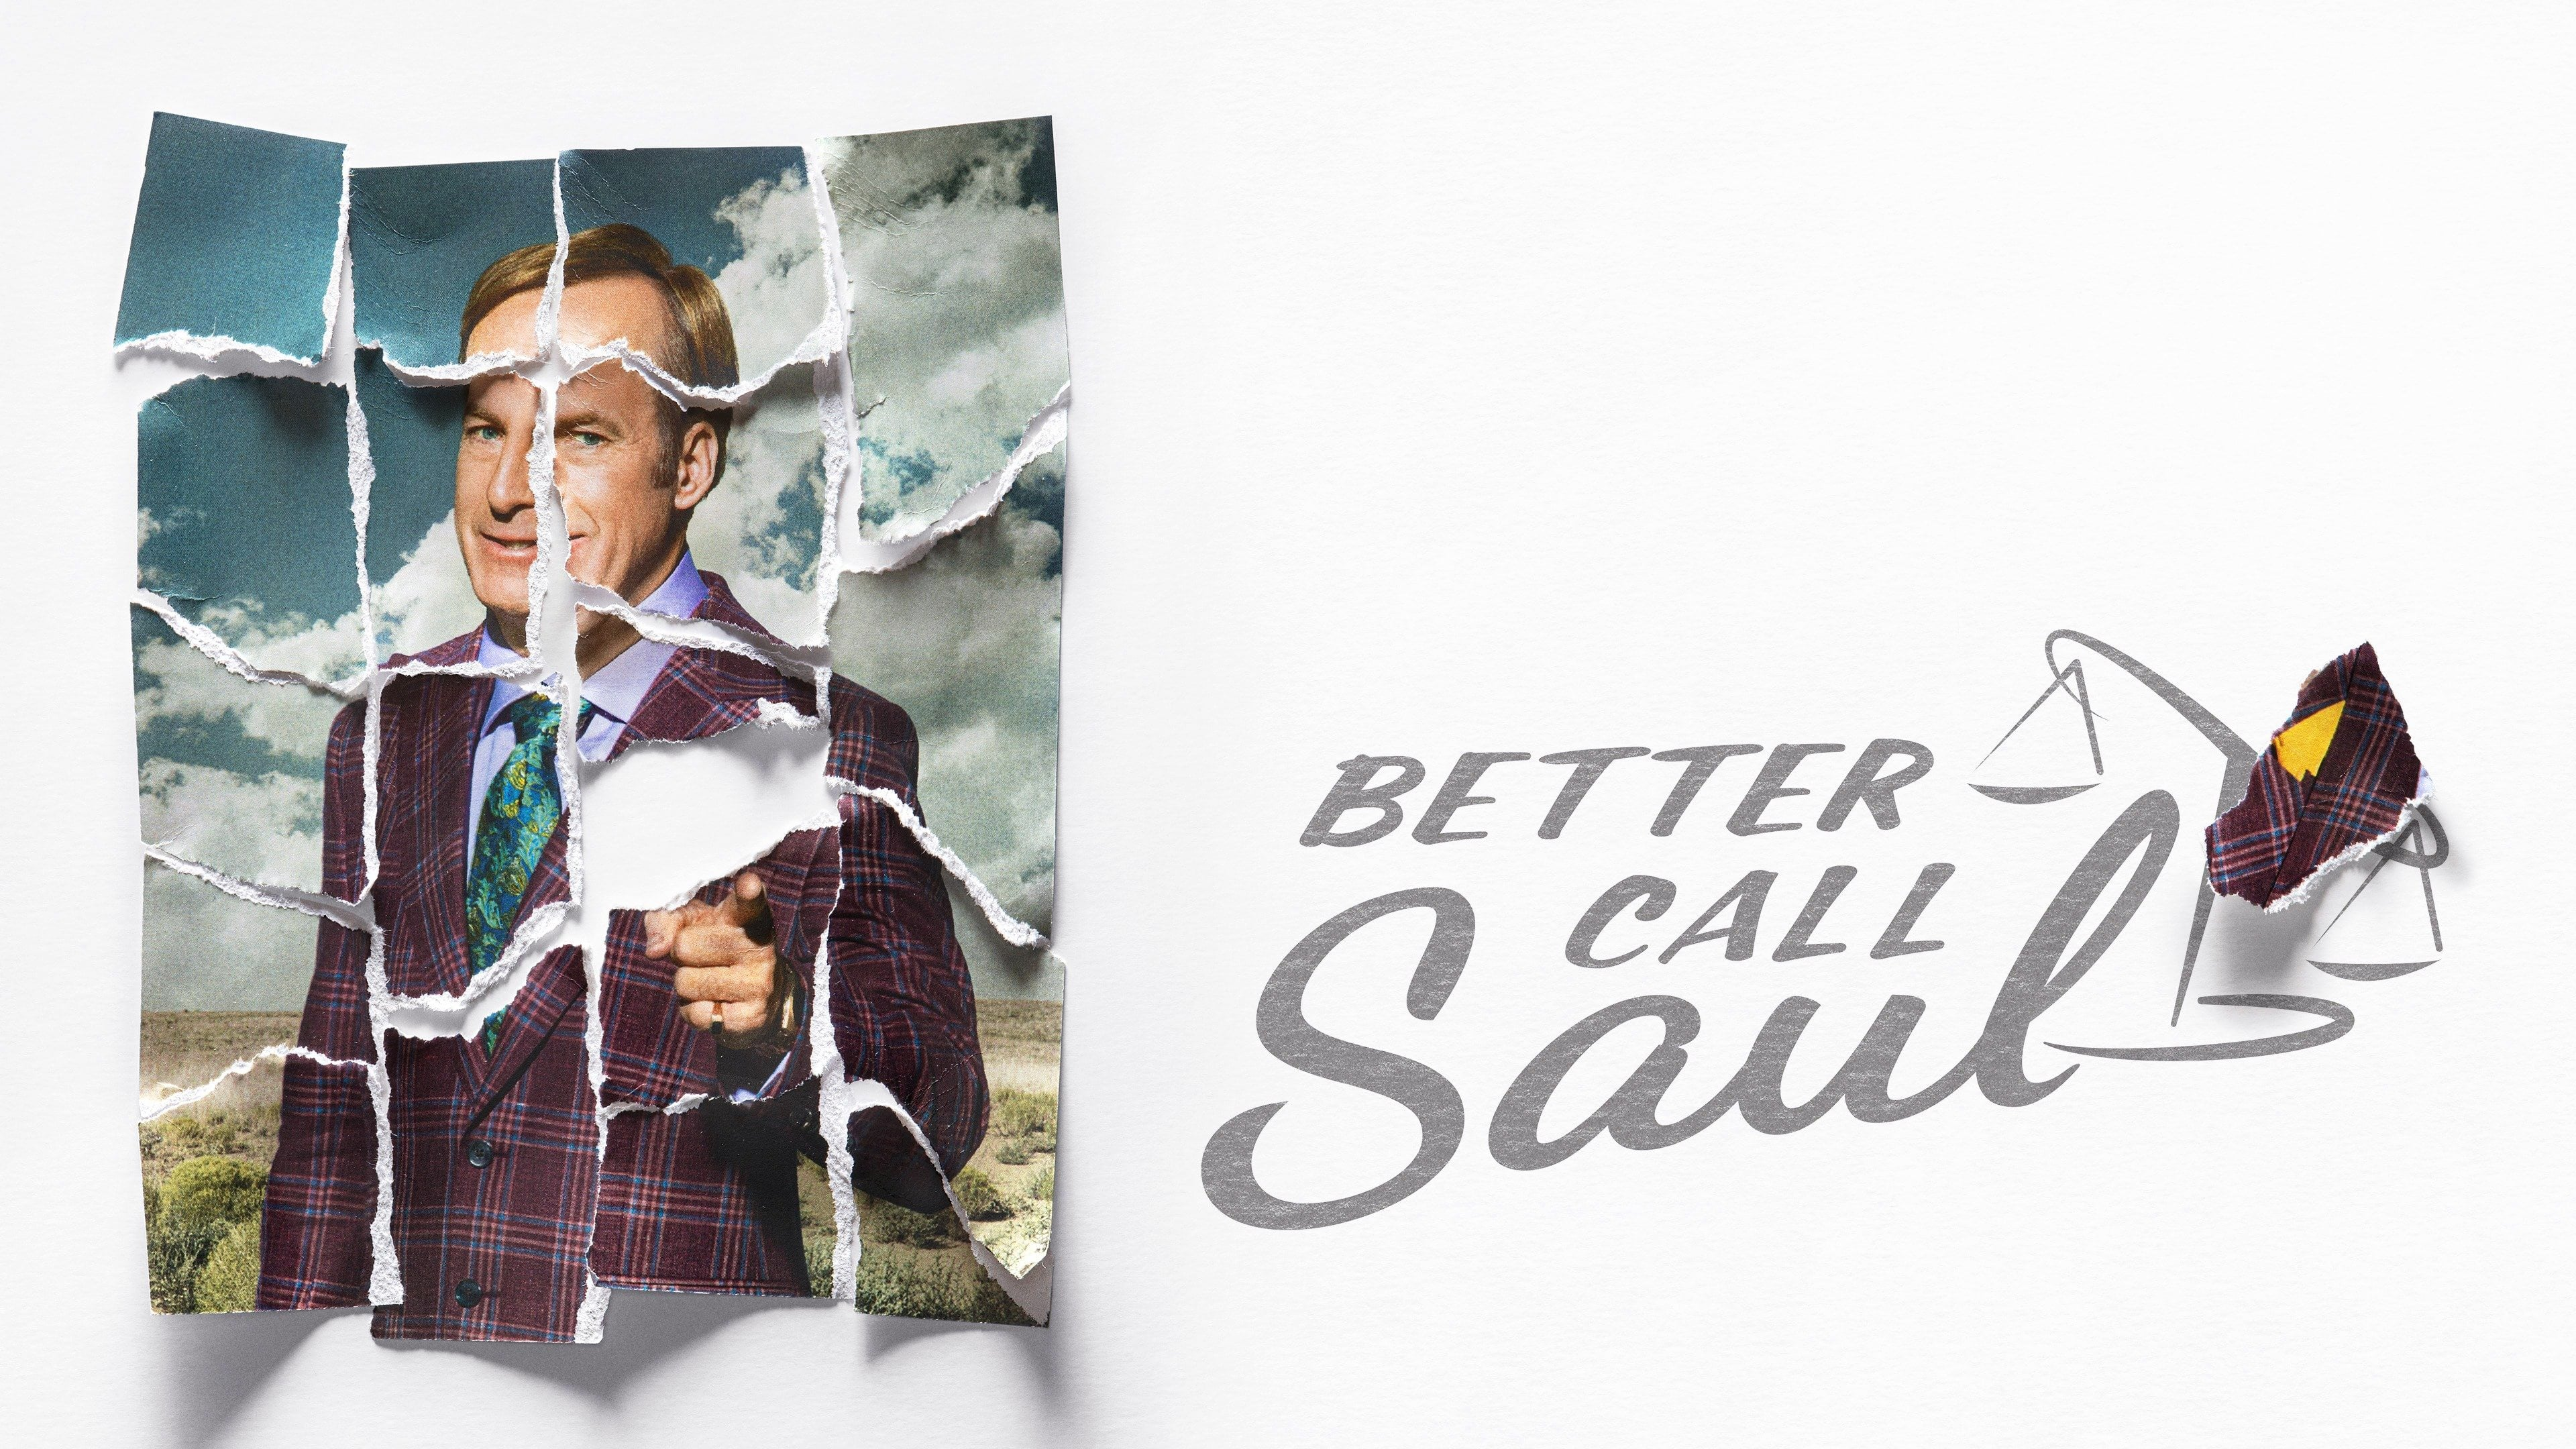 Better Call Saul - Season 5